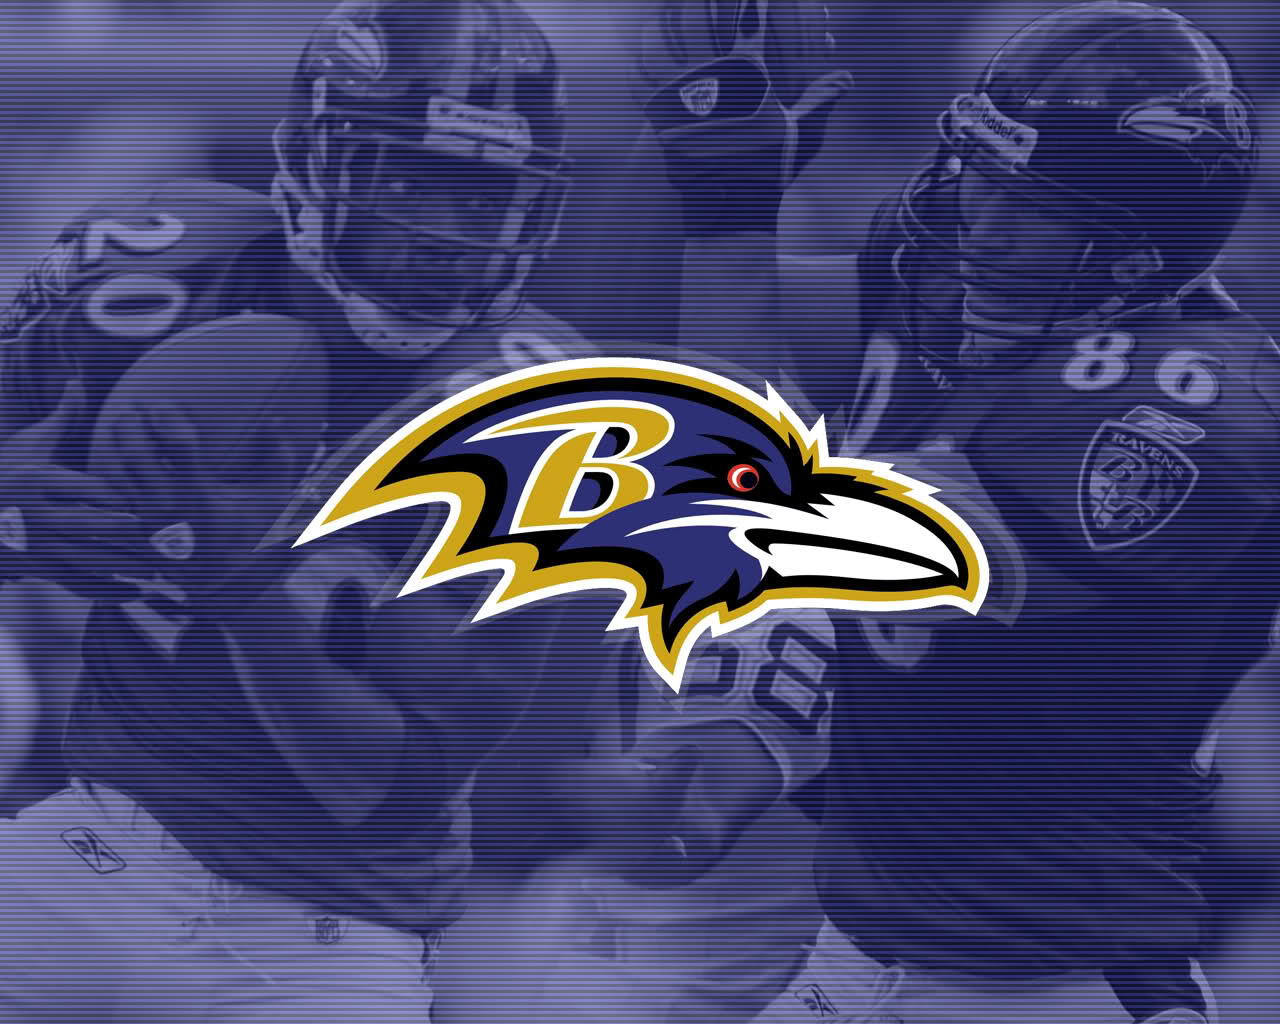 Baltimore Ravens wallpaper desktop image Baltimore Ravens wallpapers 1280x1024